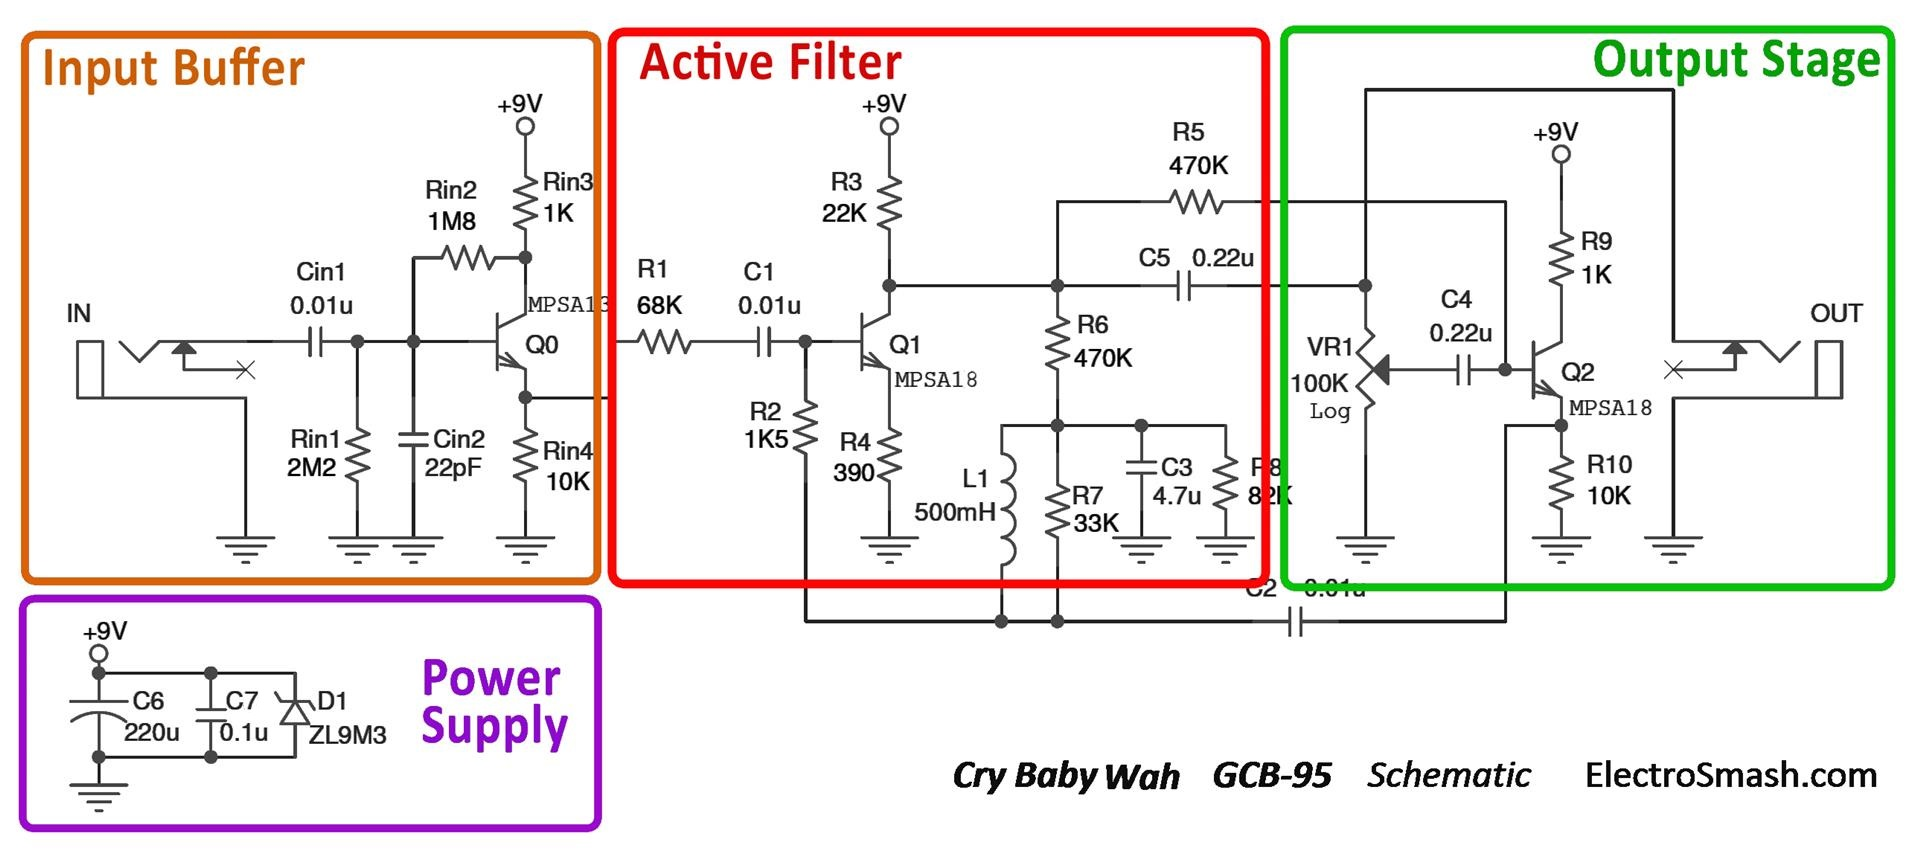 electrosmash dunlop crybaby gcb 95 circuit analysis 3pdt switch wiring diagram wah pedal wiring diagram #2